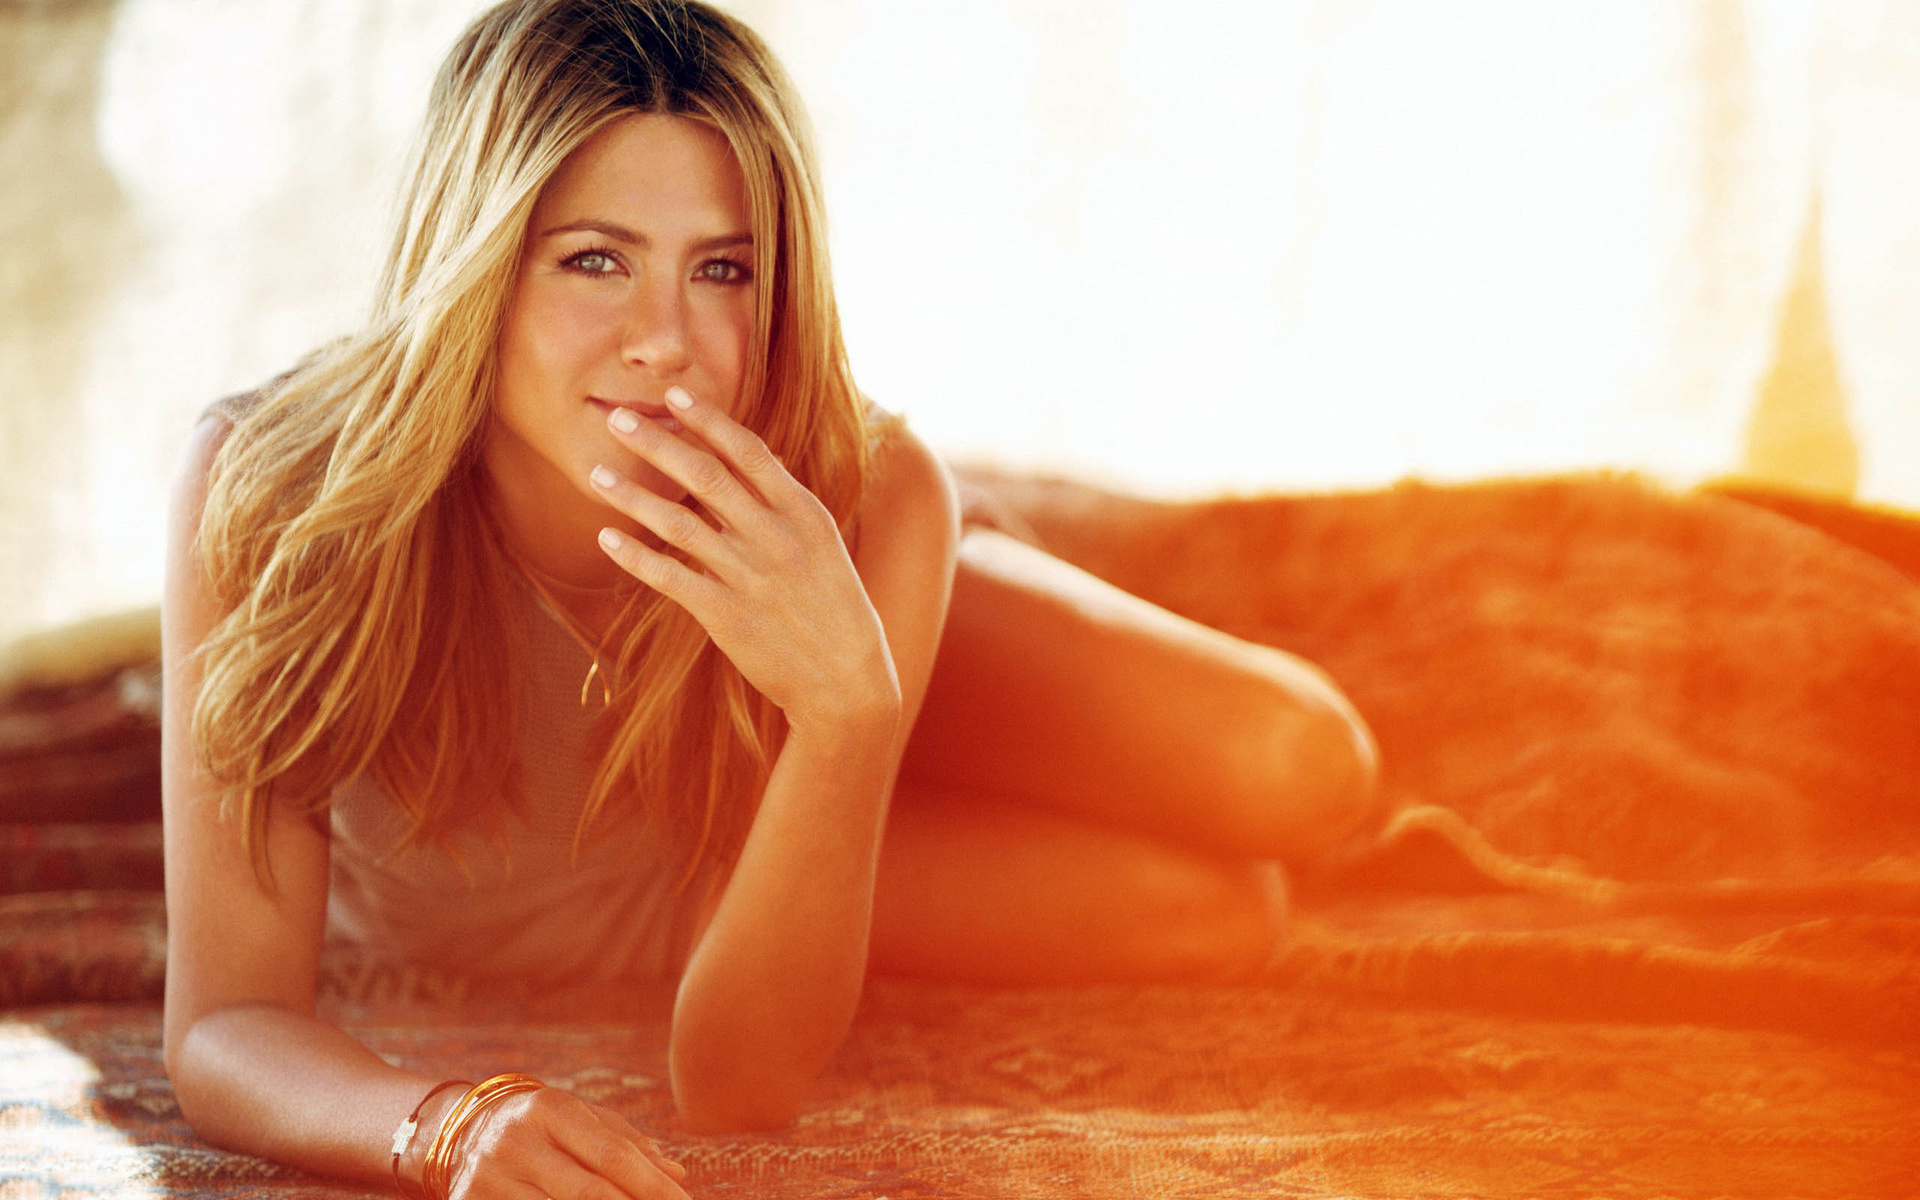 Jennifer Aniston Wallpapers High Resolution And Quality Download